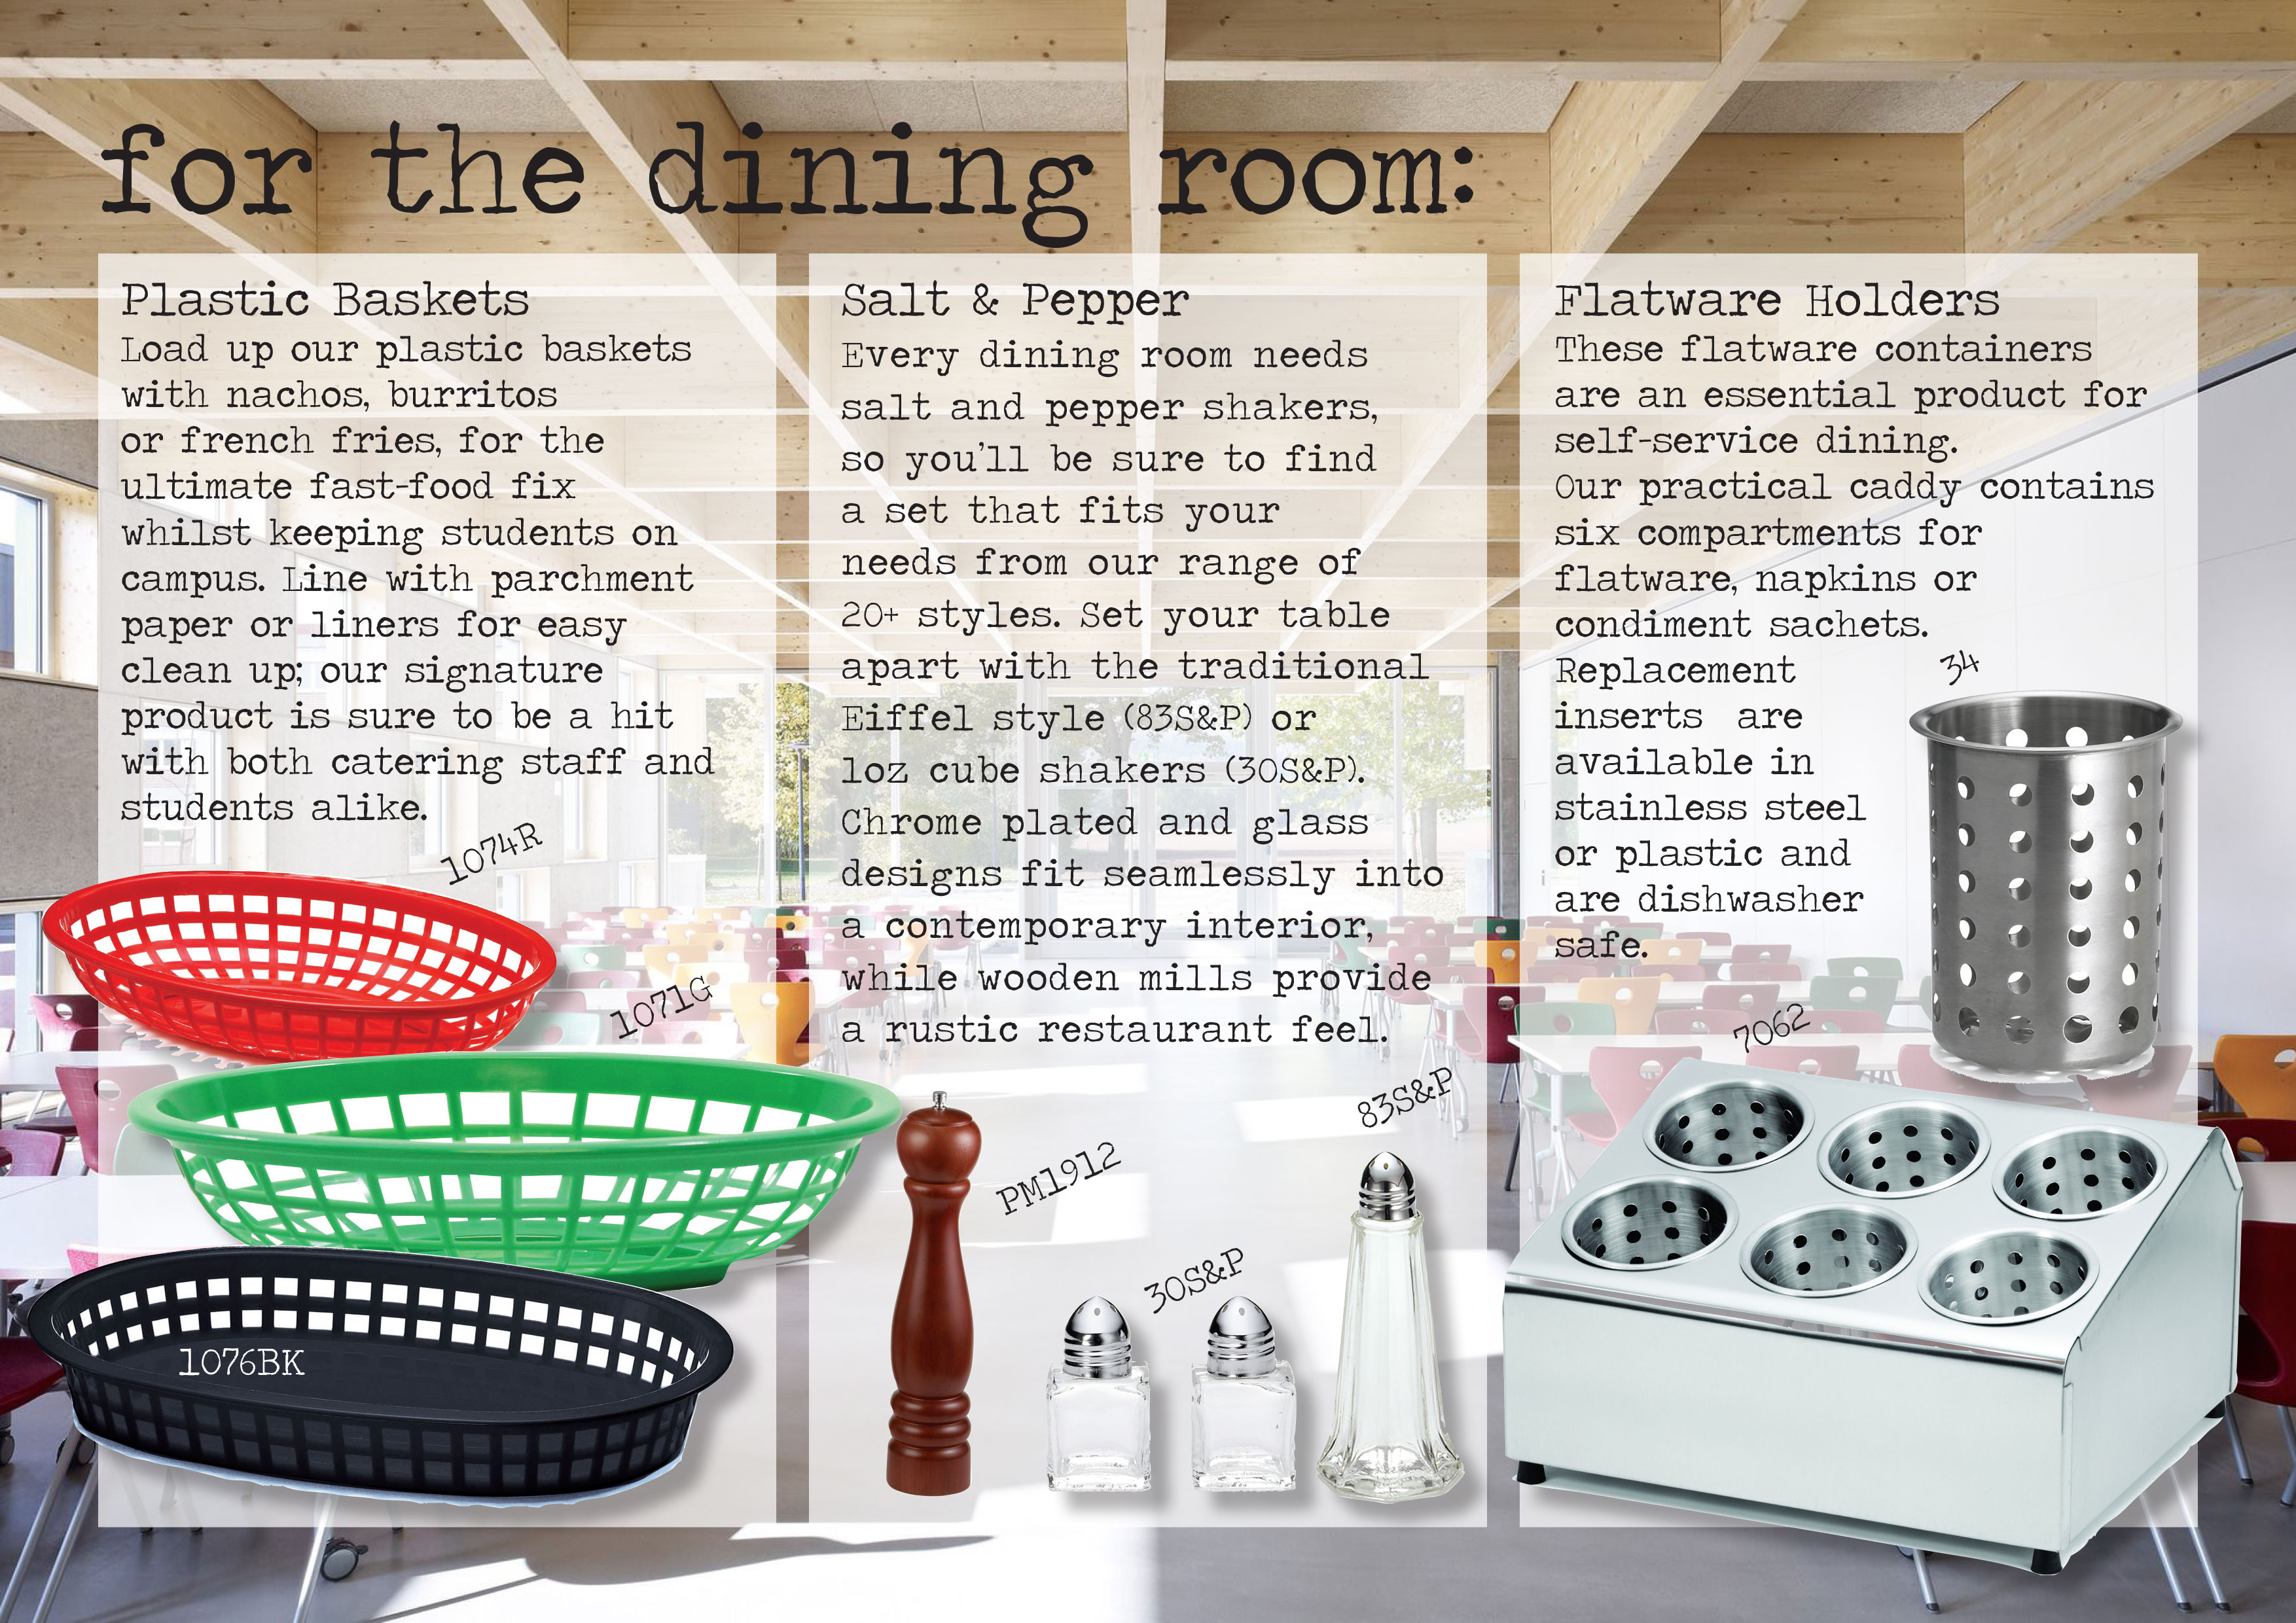 for the dining room plastic baskets, salt and pepper